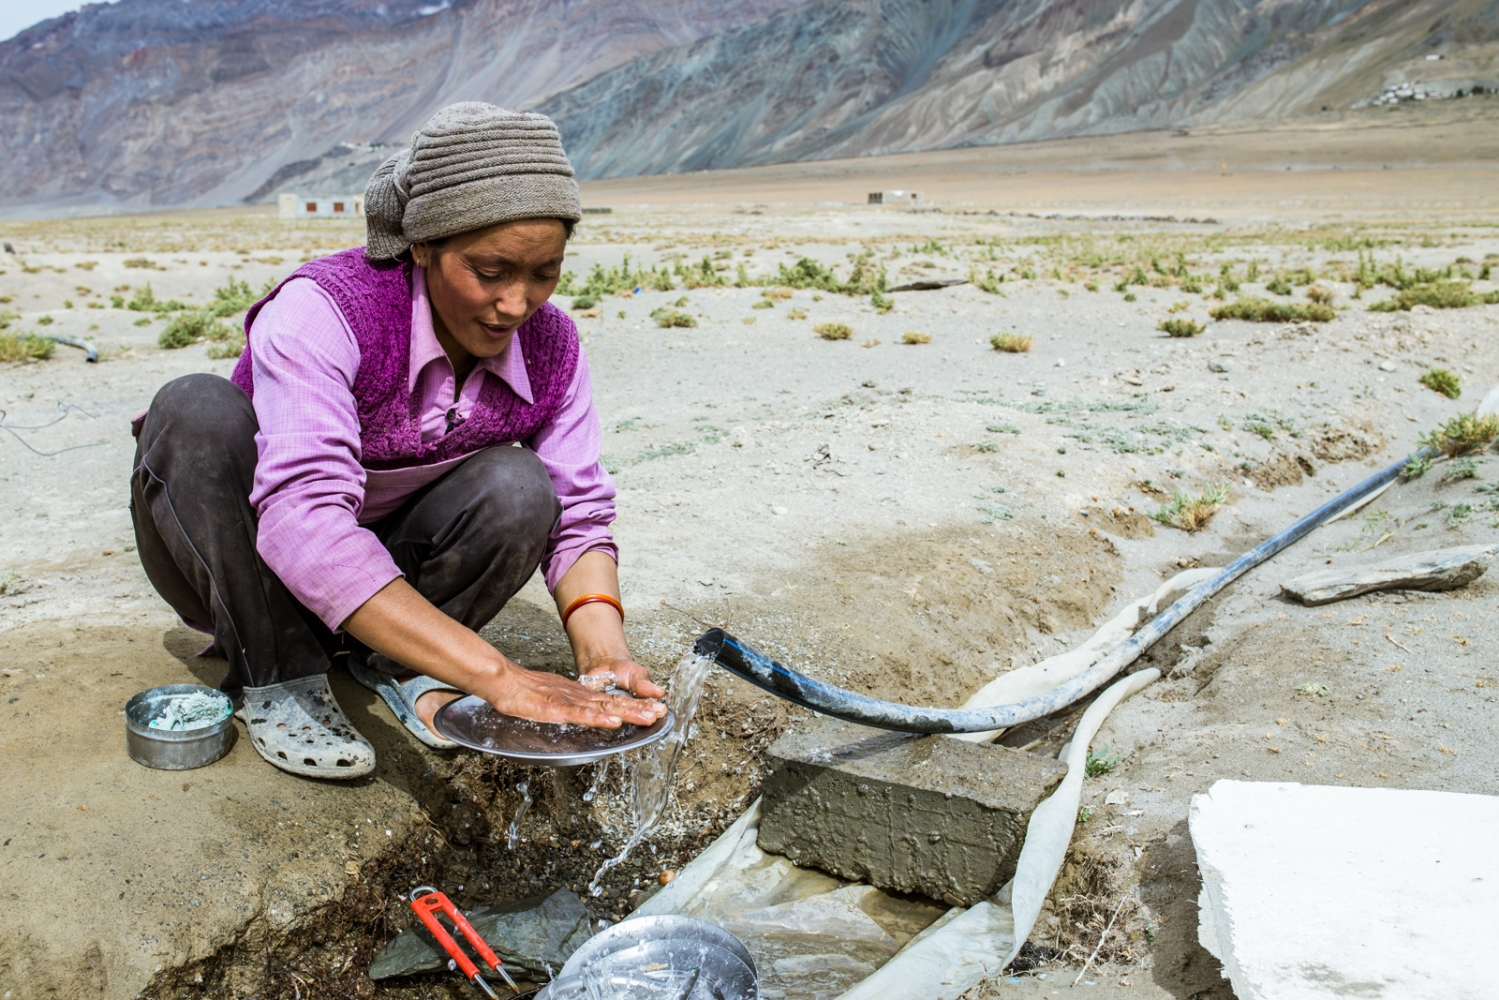 Thukjay Dolma, a resident of Lower Kumik, washes dishes under a pipe that brings water down from Kumik. Thukjay, put all her family's meagre savings into moving and building a new home. Once again, without water and savings, they are unsure of what the future will bring them.